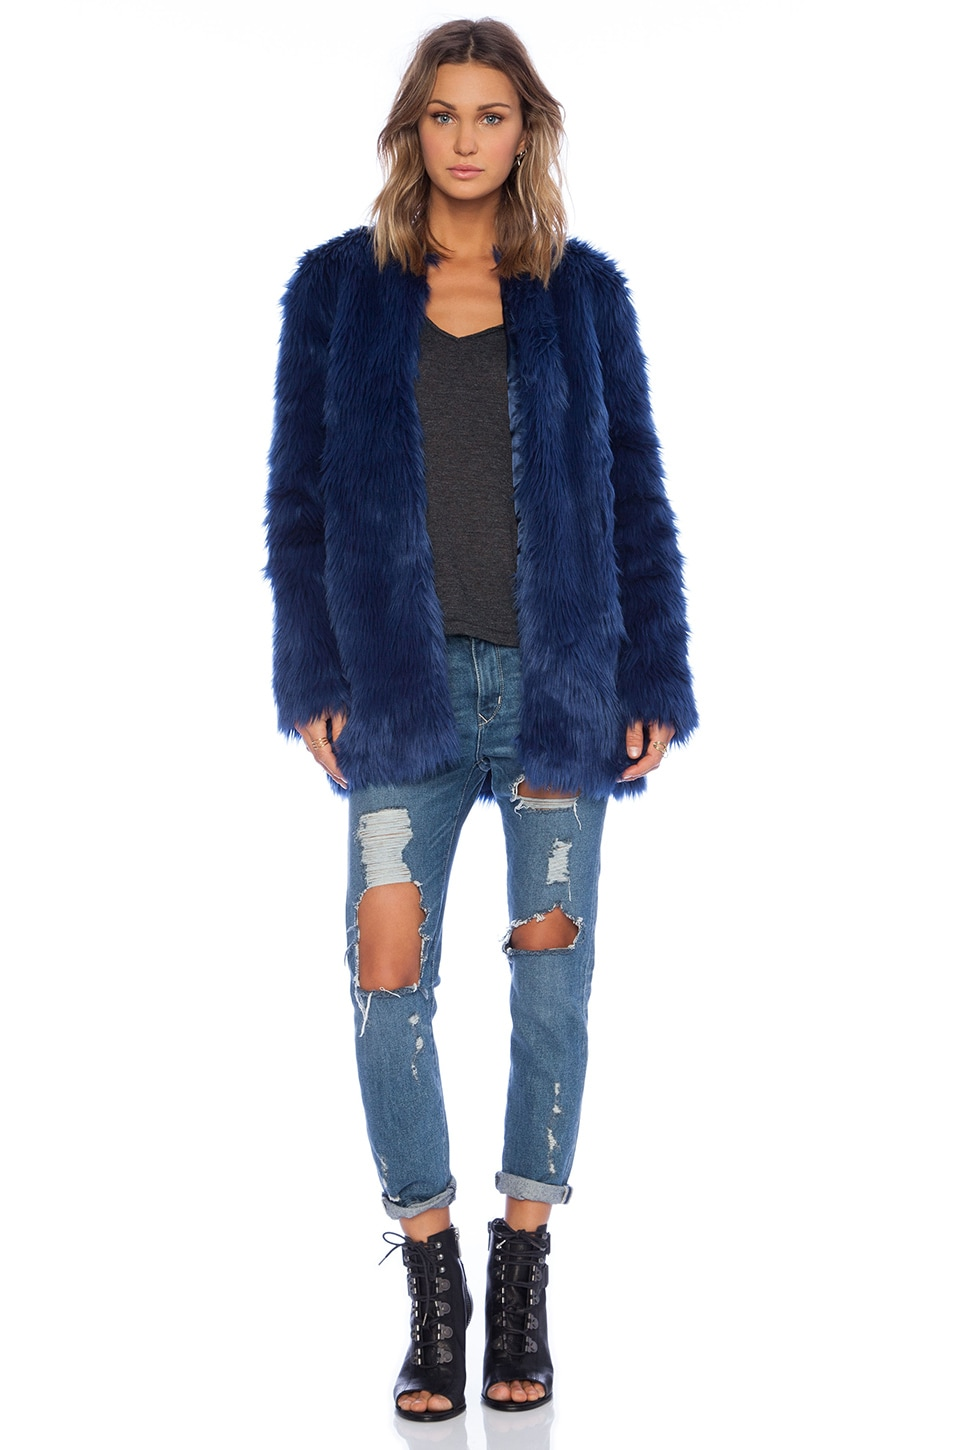 For Love & Lemons Wanderlust Faux Fur Jacket in Blue Ashes